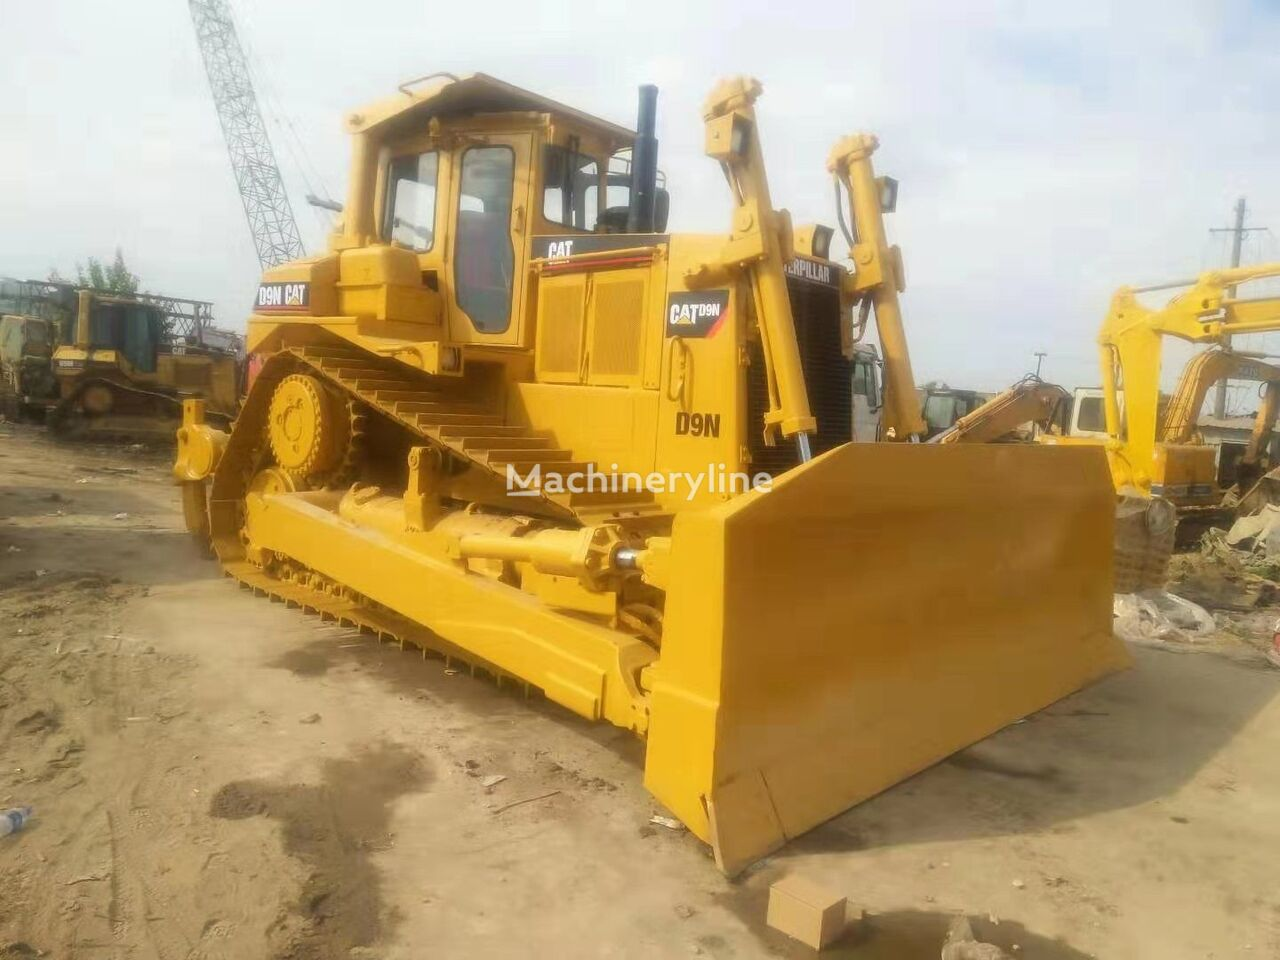 CATERPILLAR D9N  bulldozer